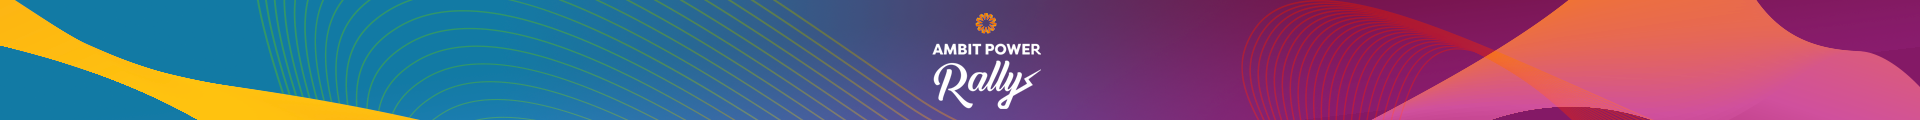 Ambit Power Rally